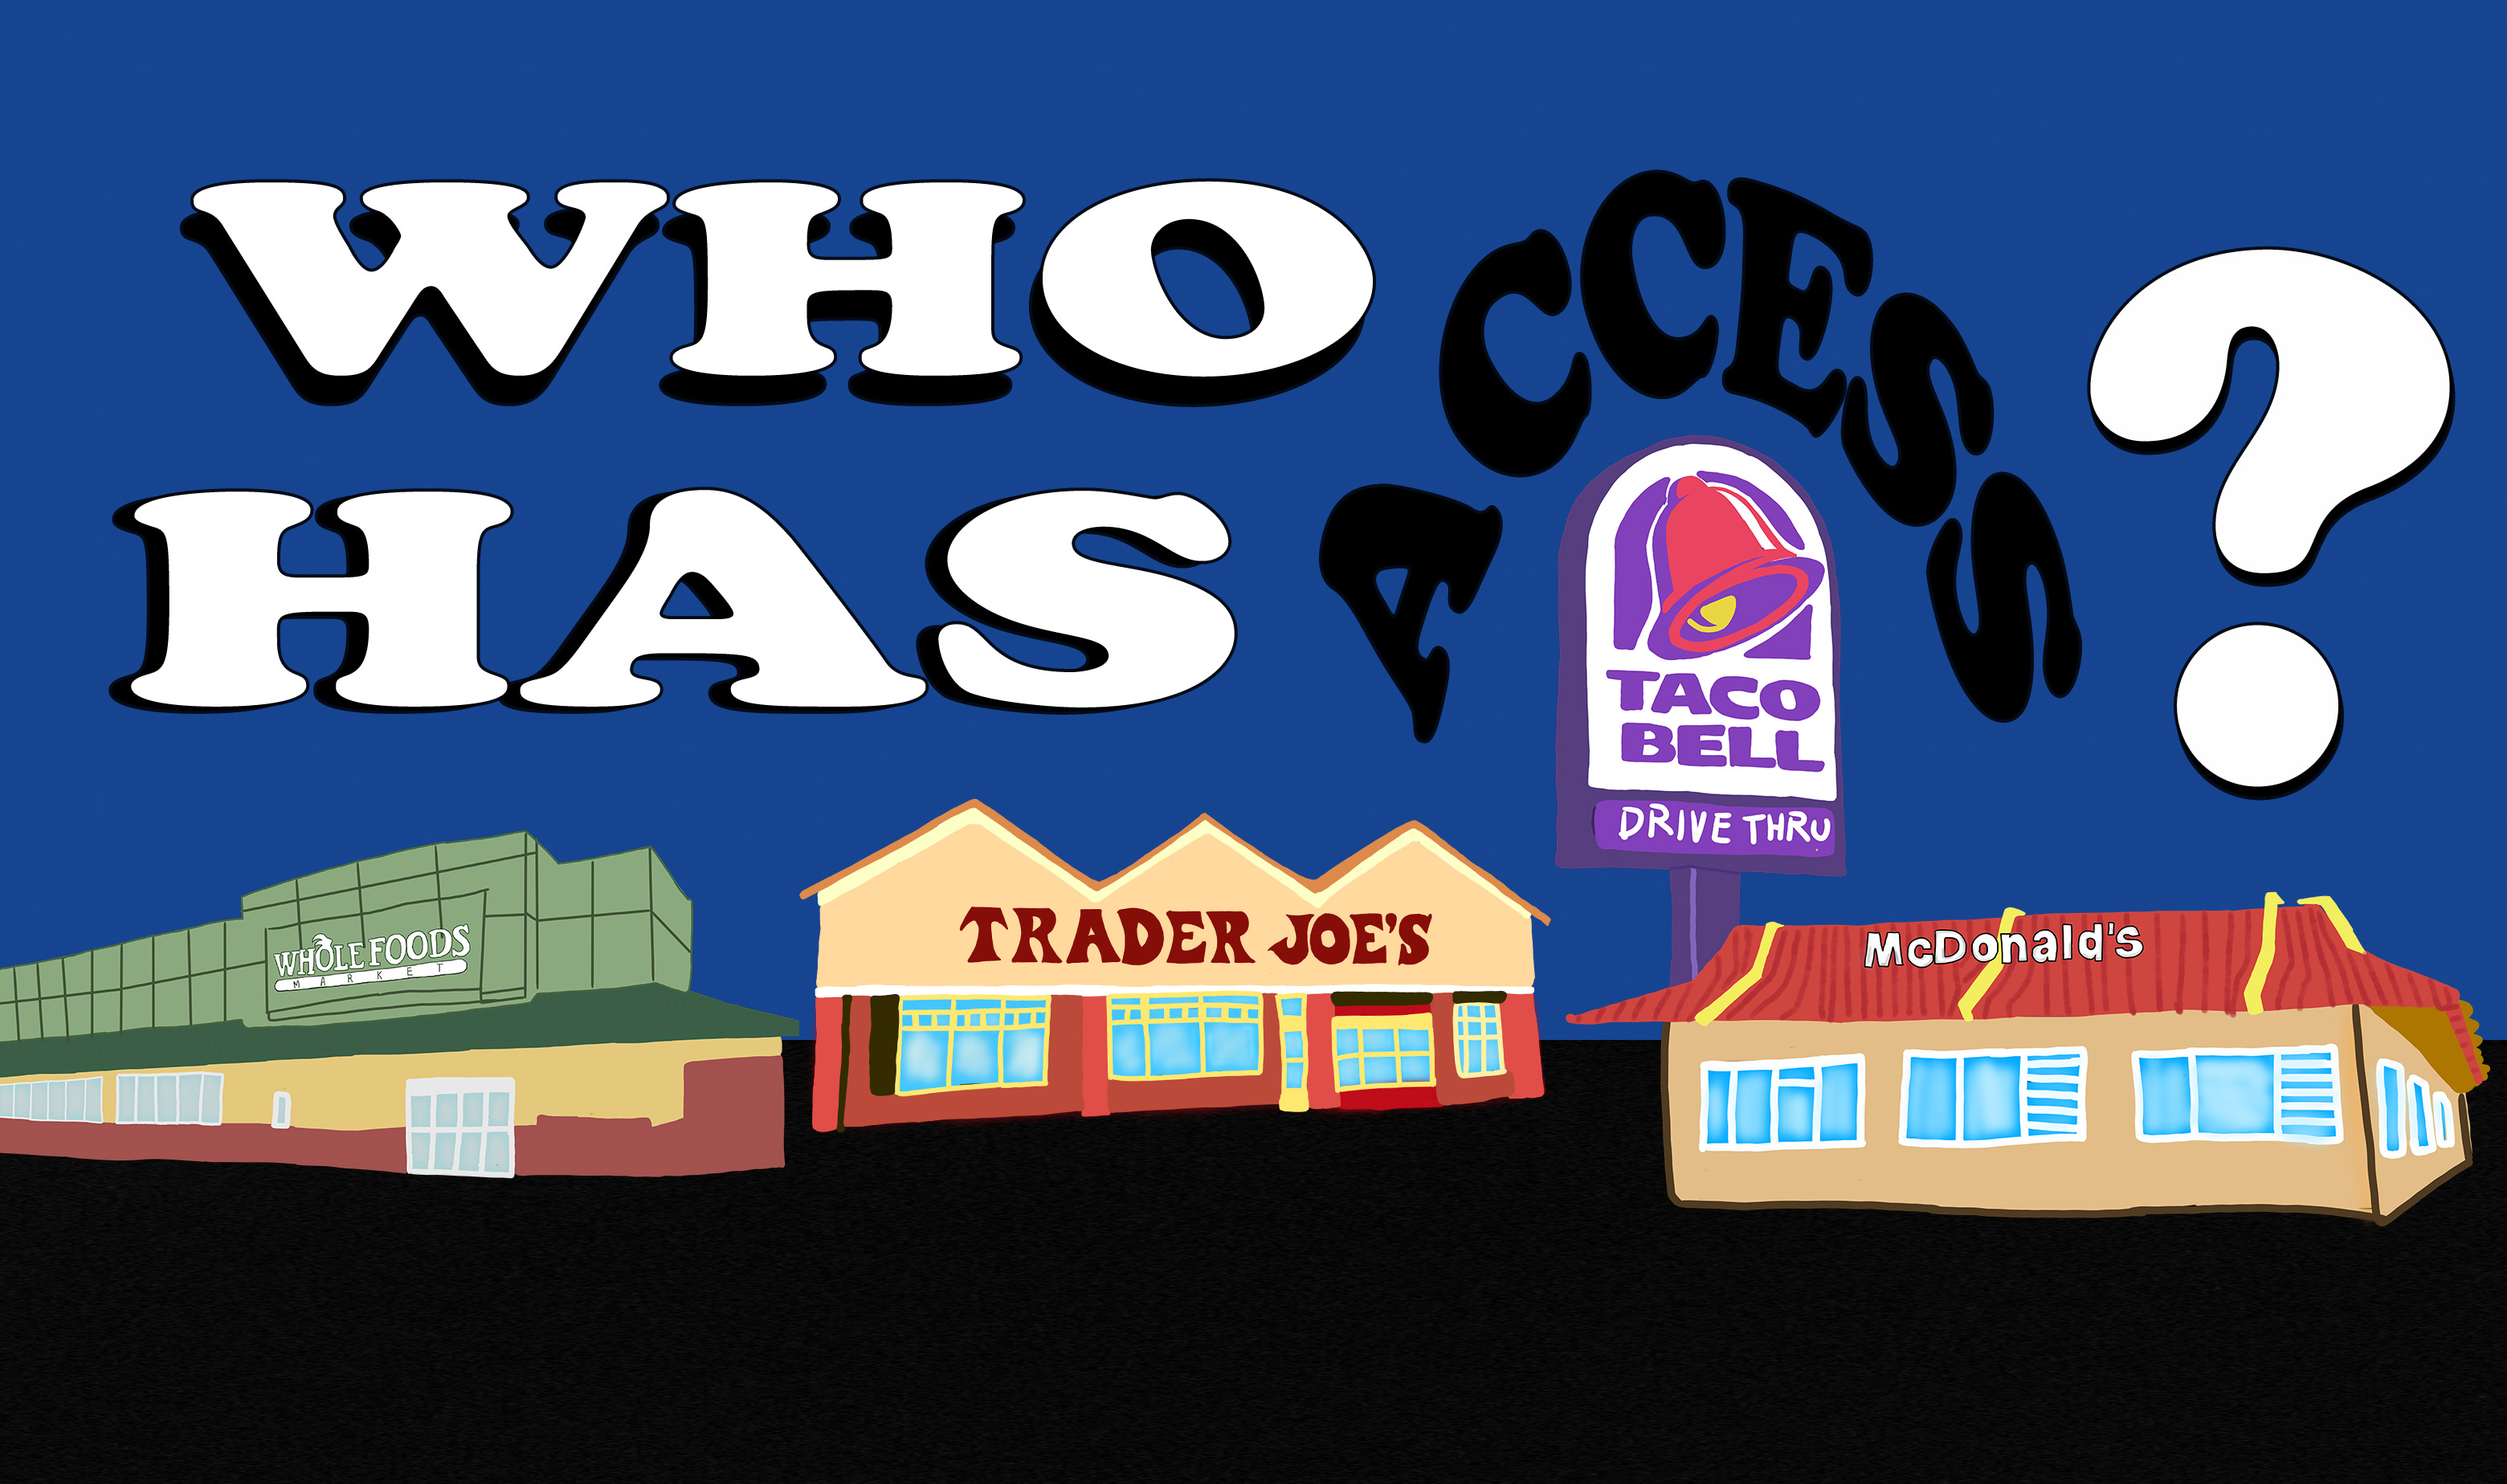 digital illustration of Whole Foods, Trader Joe's, and Taco Bell with the question Who Has Access? on top